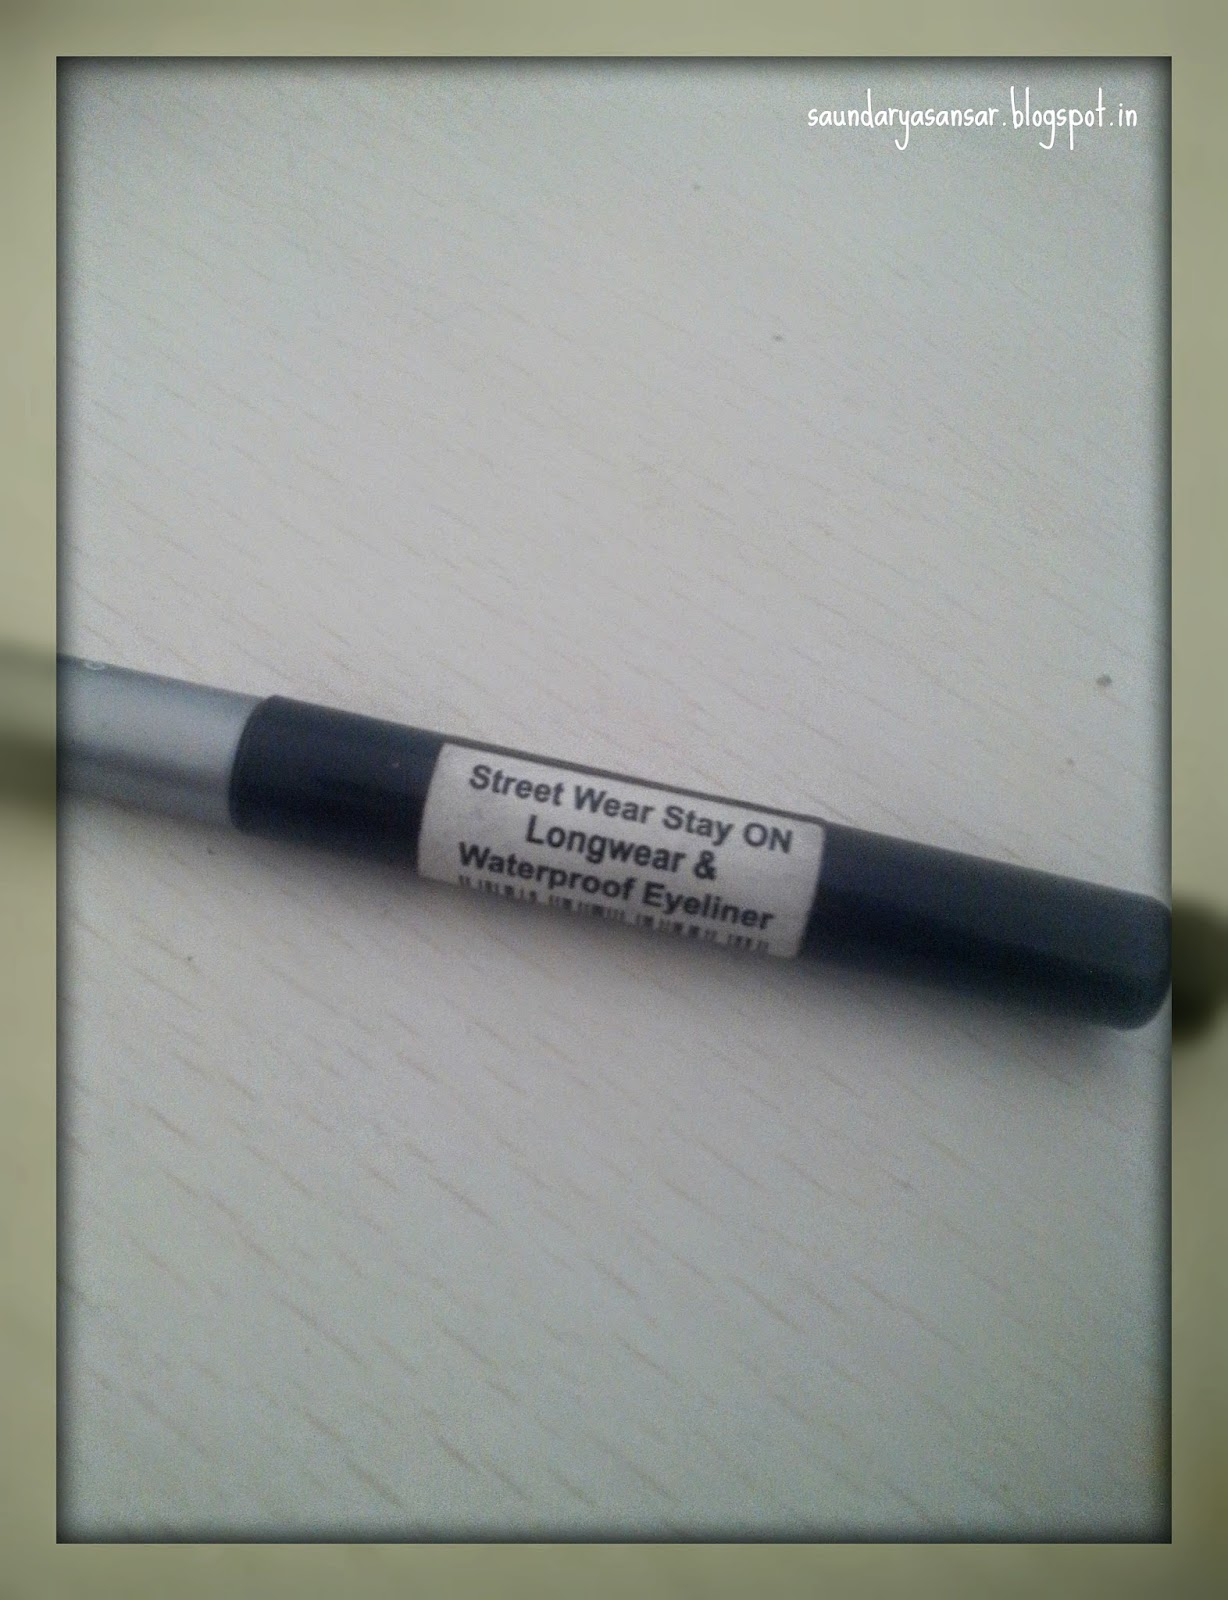 Street Wear STAY ON long wear and water proof eye liner in 03 Onyx Review